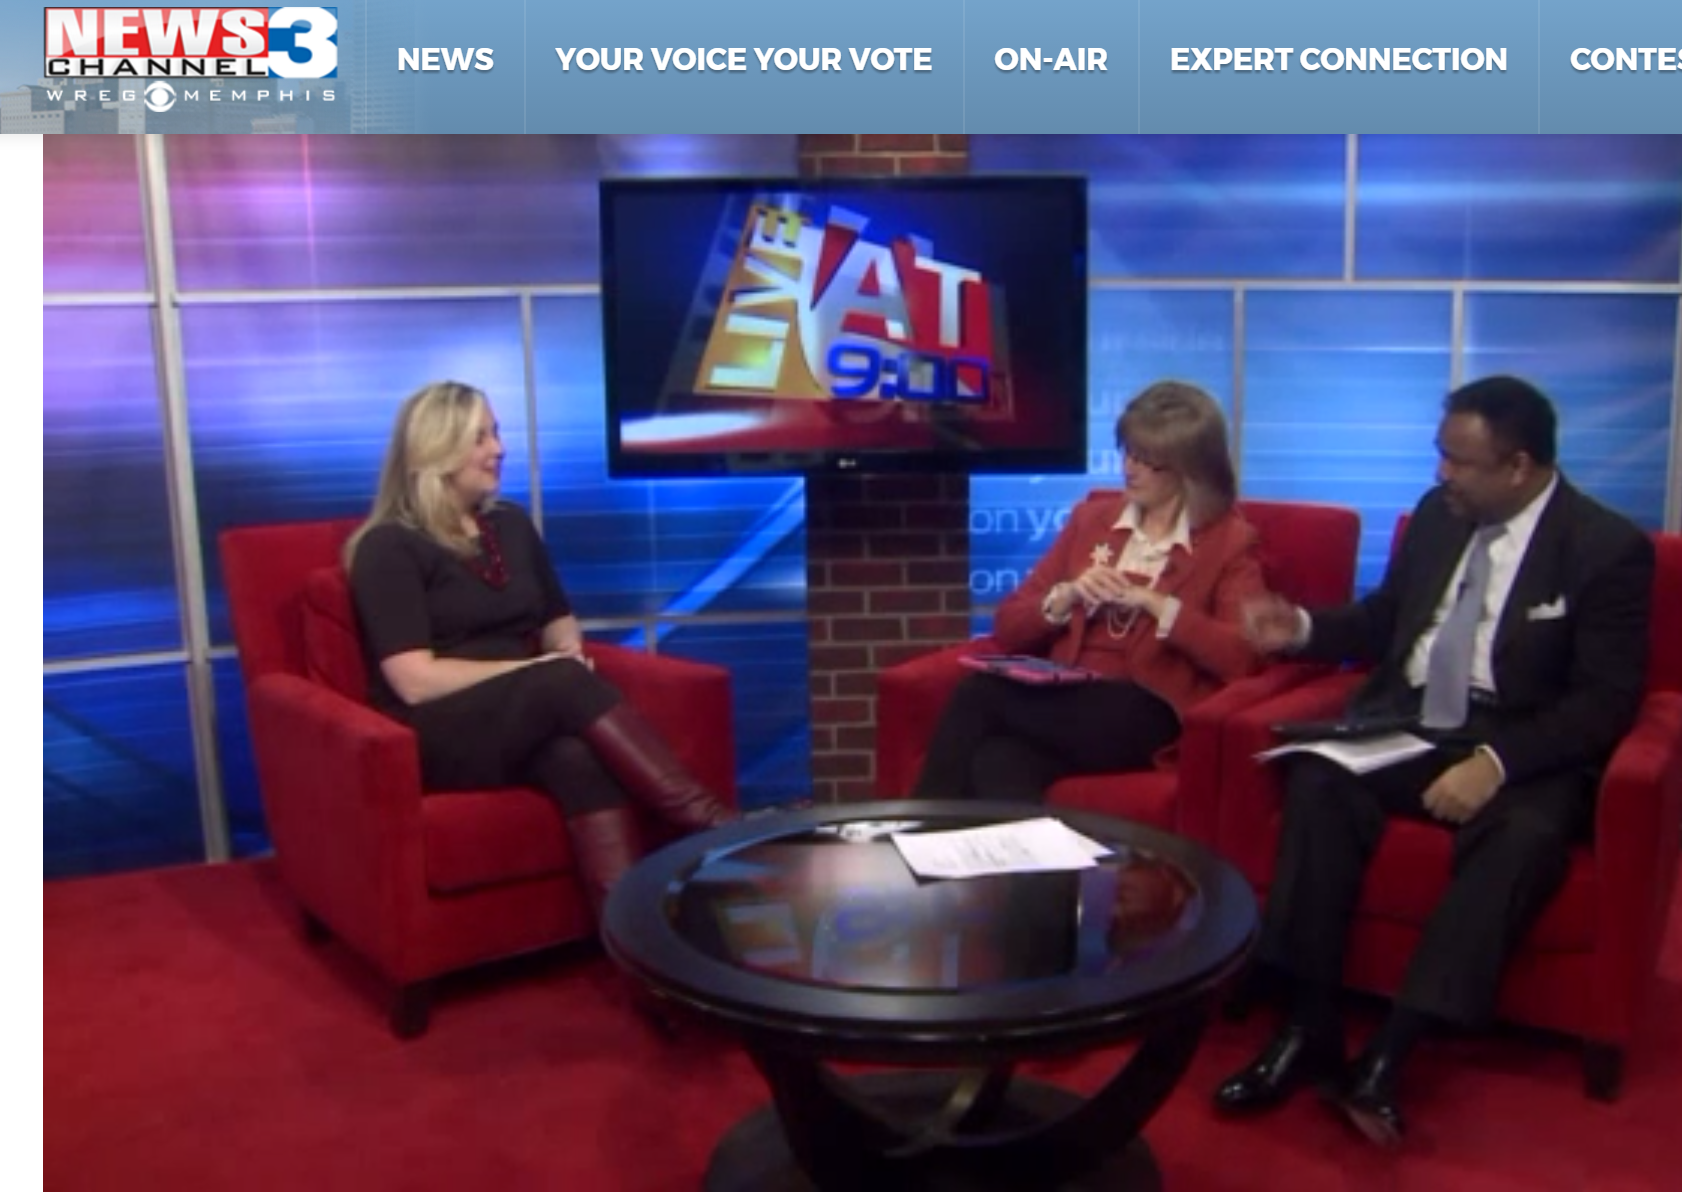 Shawn Karol Sandy FEATURED EXPERT: Interview on WREG - Ramp up your digital image